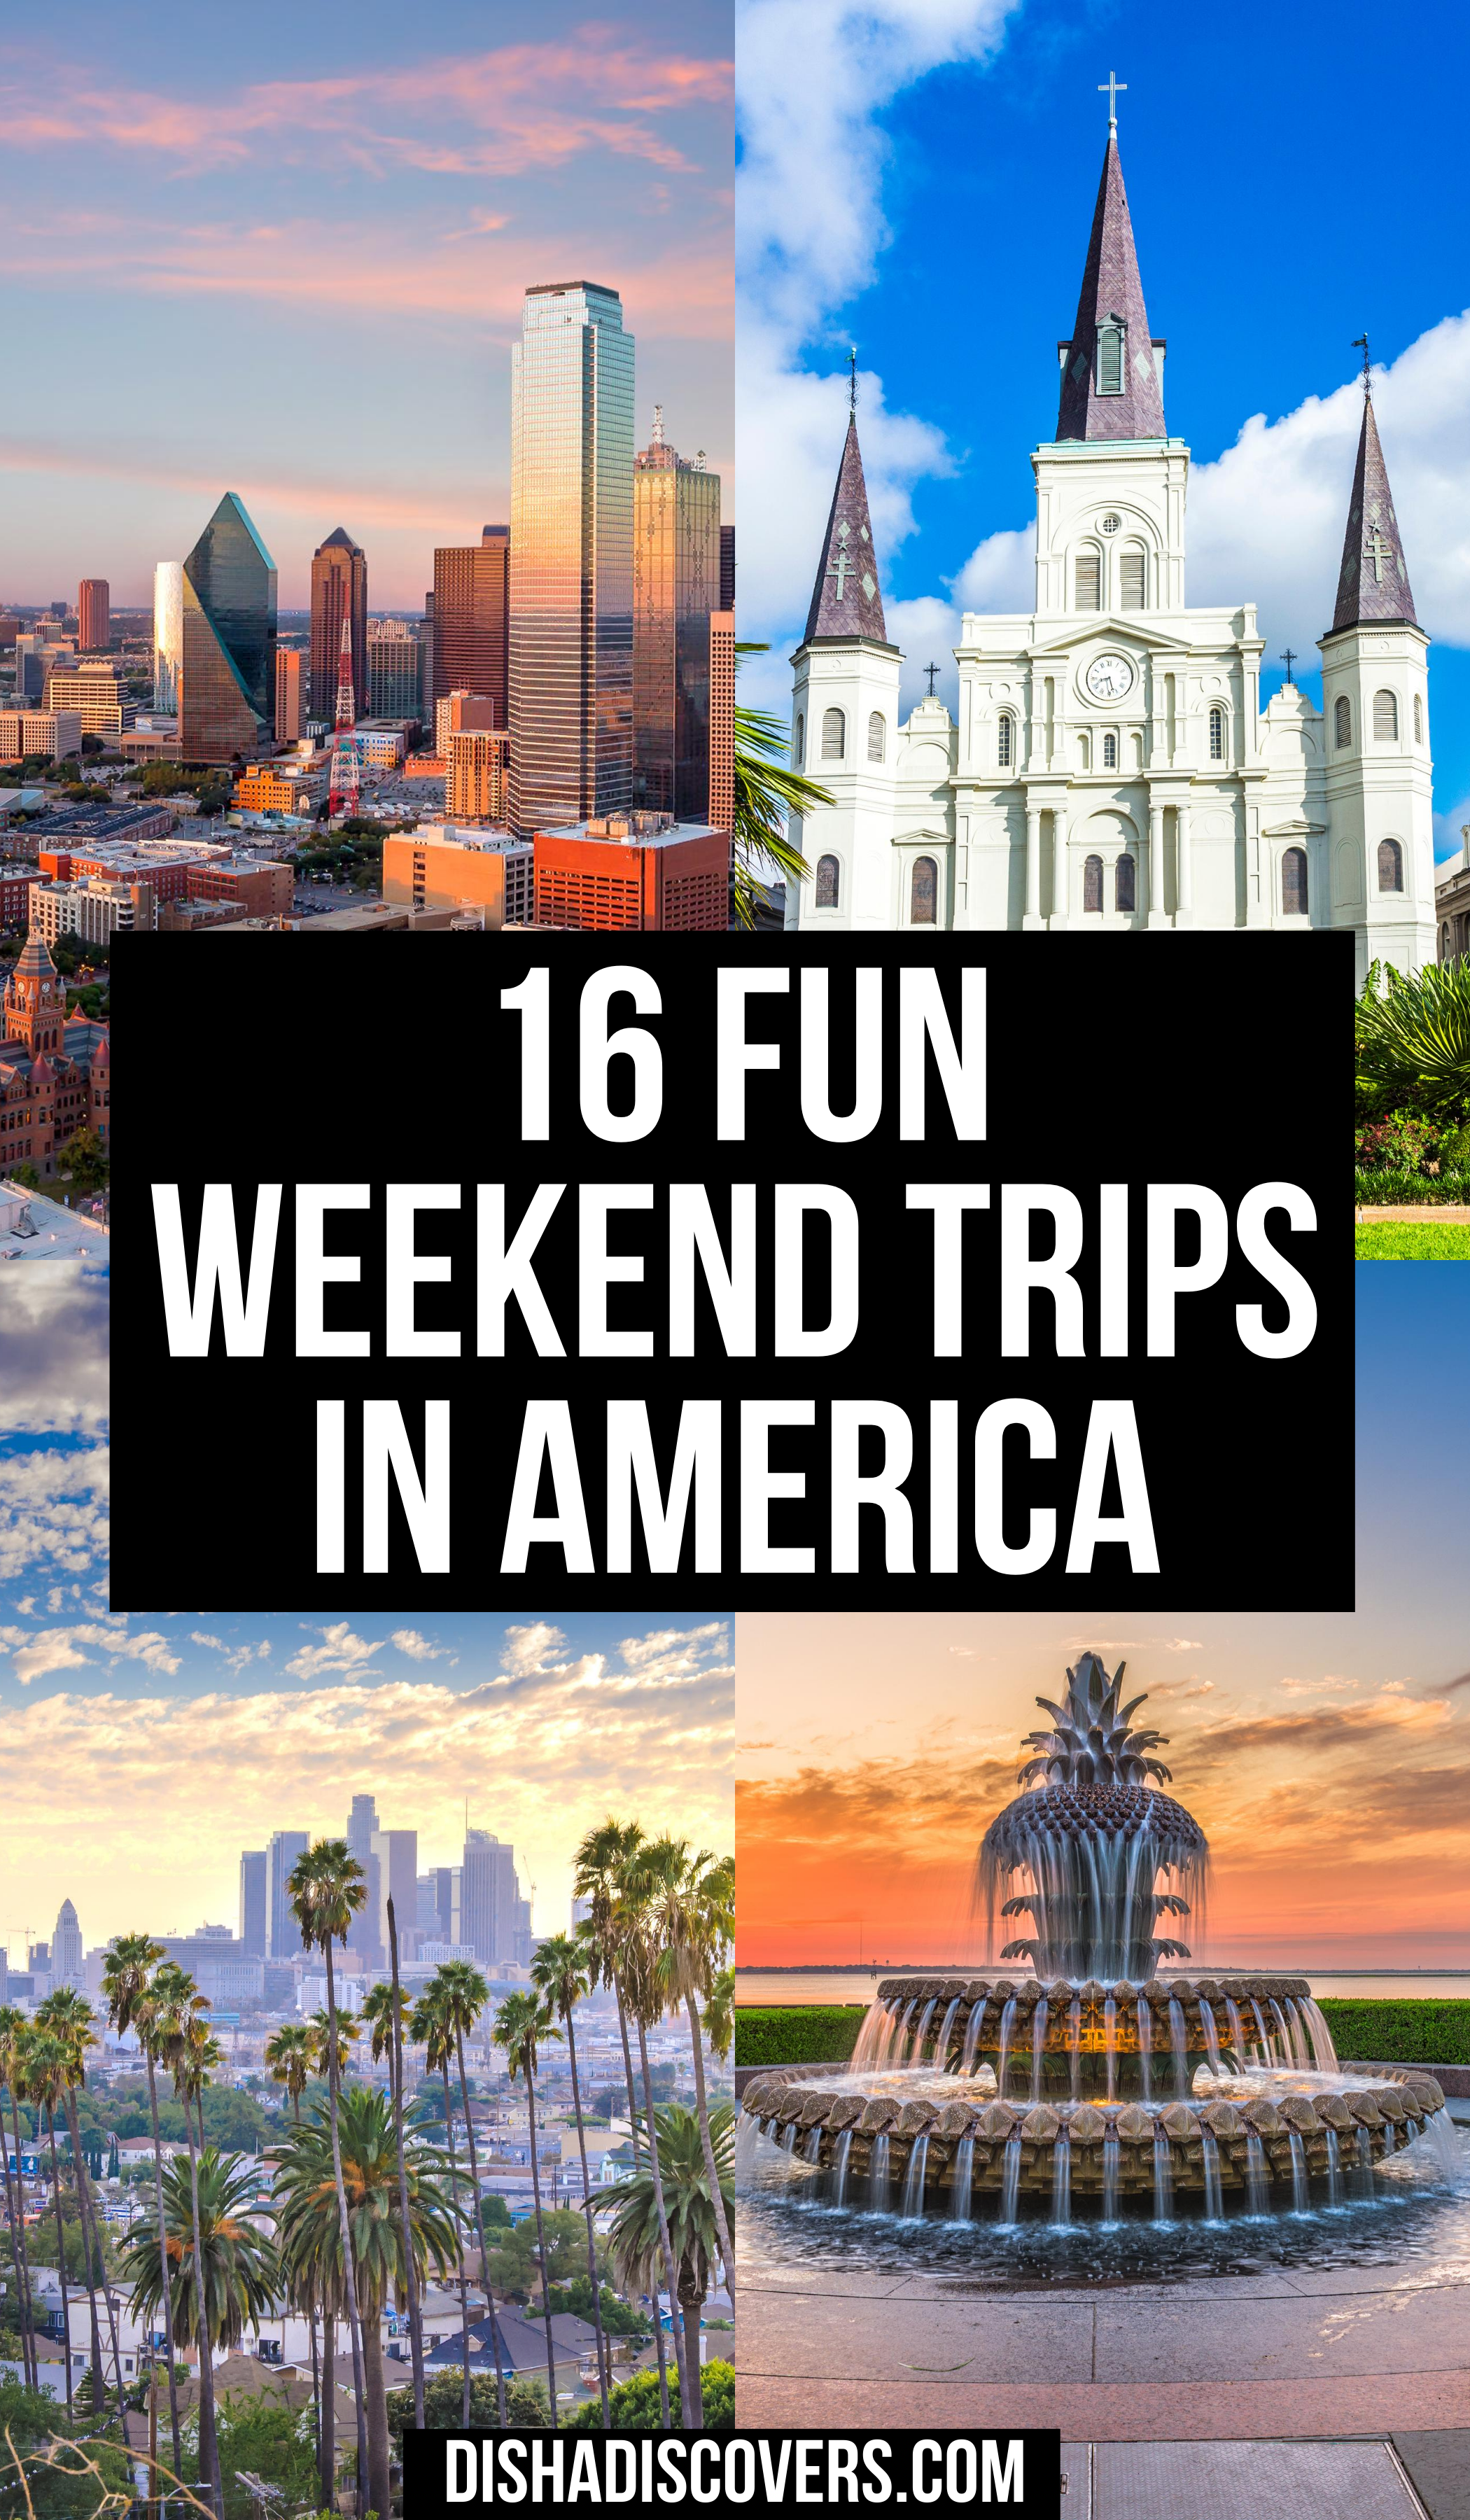 Usa Weekend Trips 25 Amazing Destinations For A Short Getaway Short Getaways Usa Travel Destinations Weekend Trips